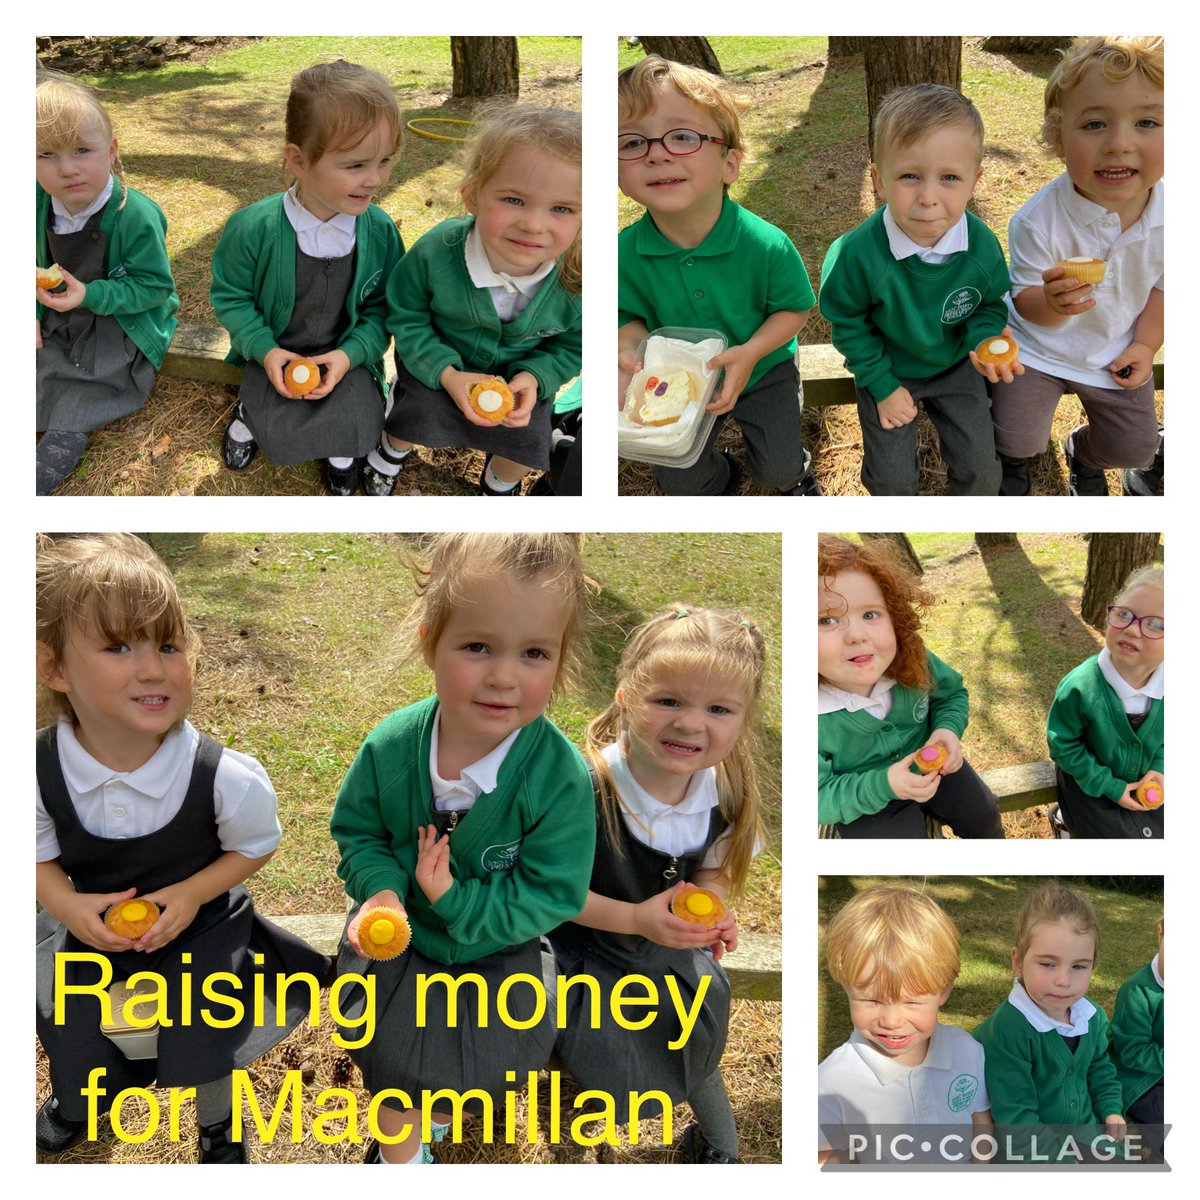 Afternoon Nursery enjoyed collecting money and eating cakes for #MacmillanCoffeeMorning @StMarysCIW #wearestmarysciw #dreambelieveachieve